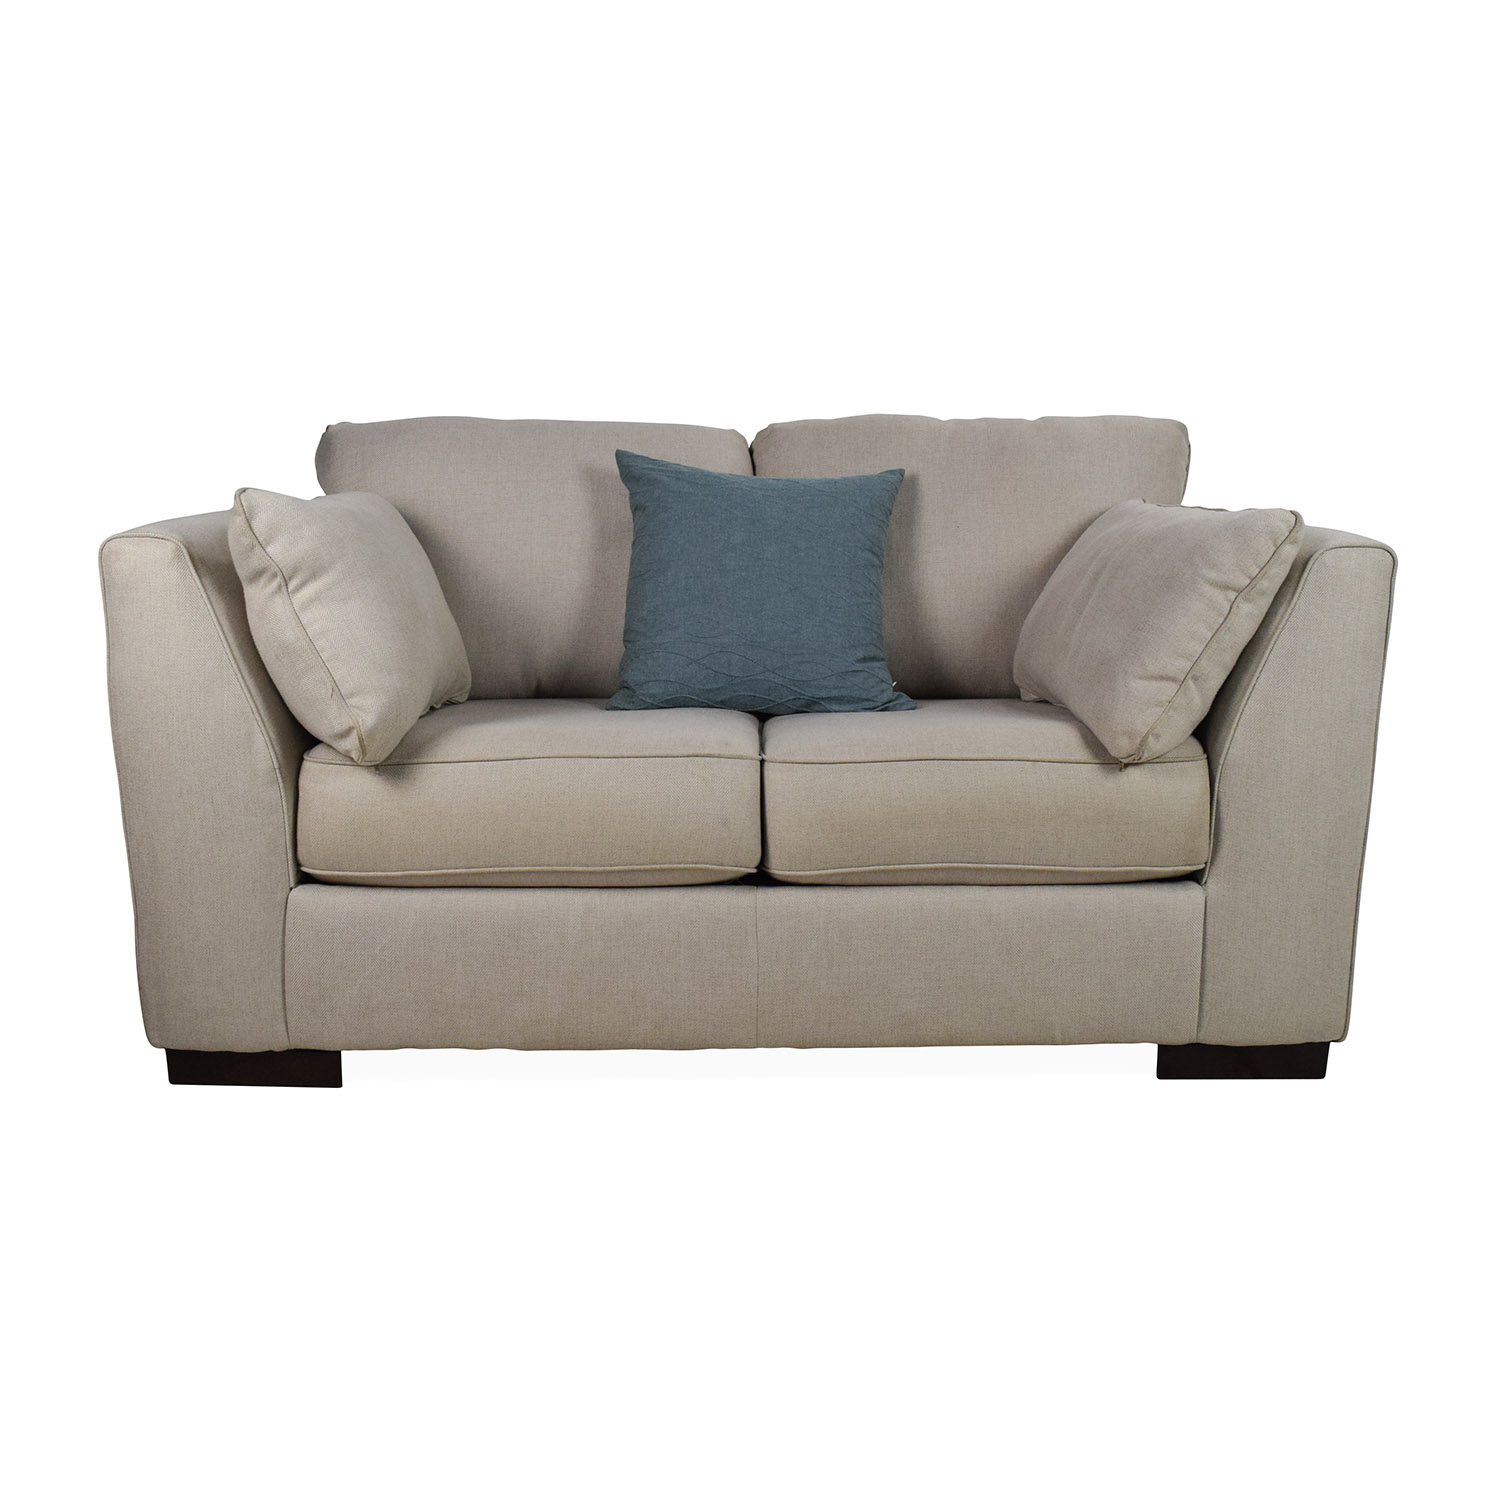 Reclining loveseat ashley furniture gunsmoke alzena power reclining loveseat with console view Sofa loveseat